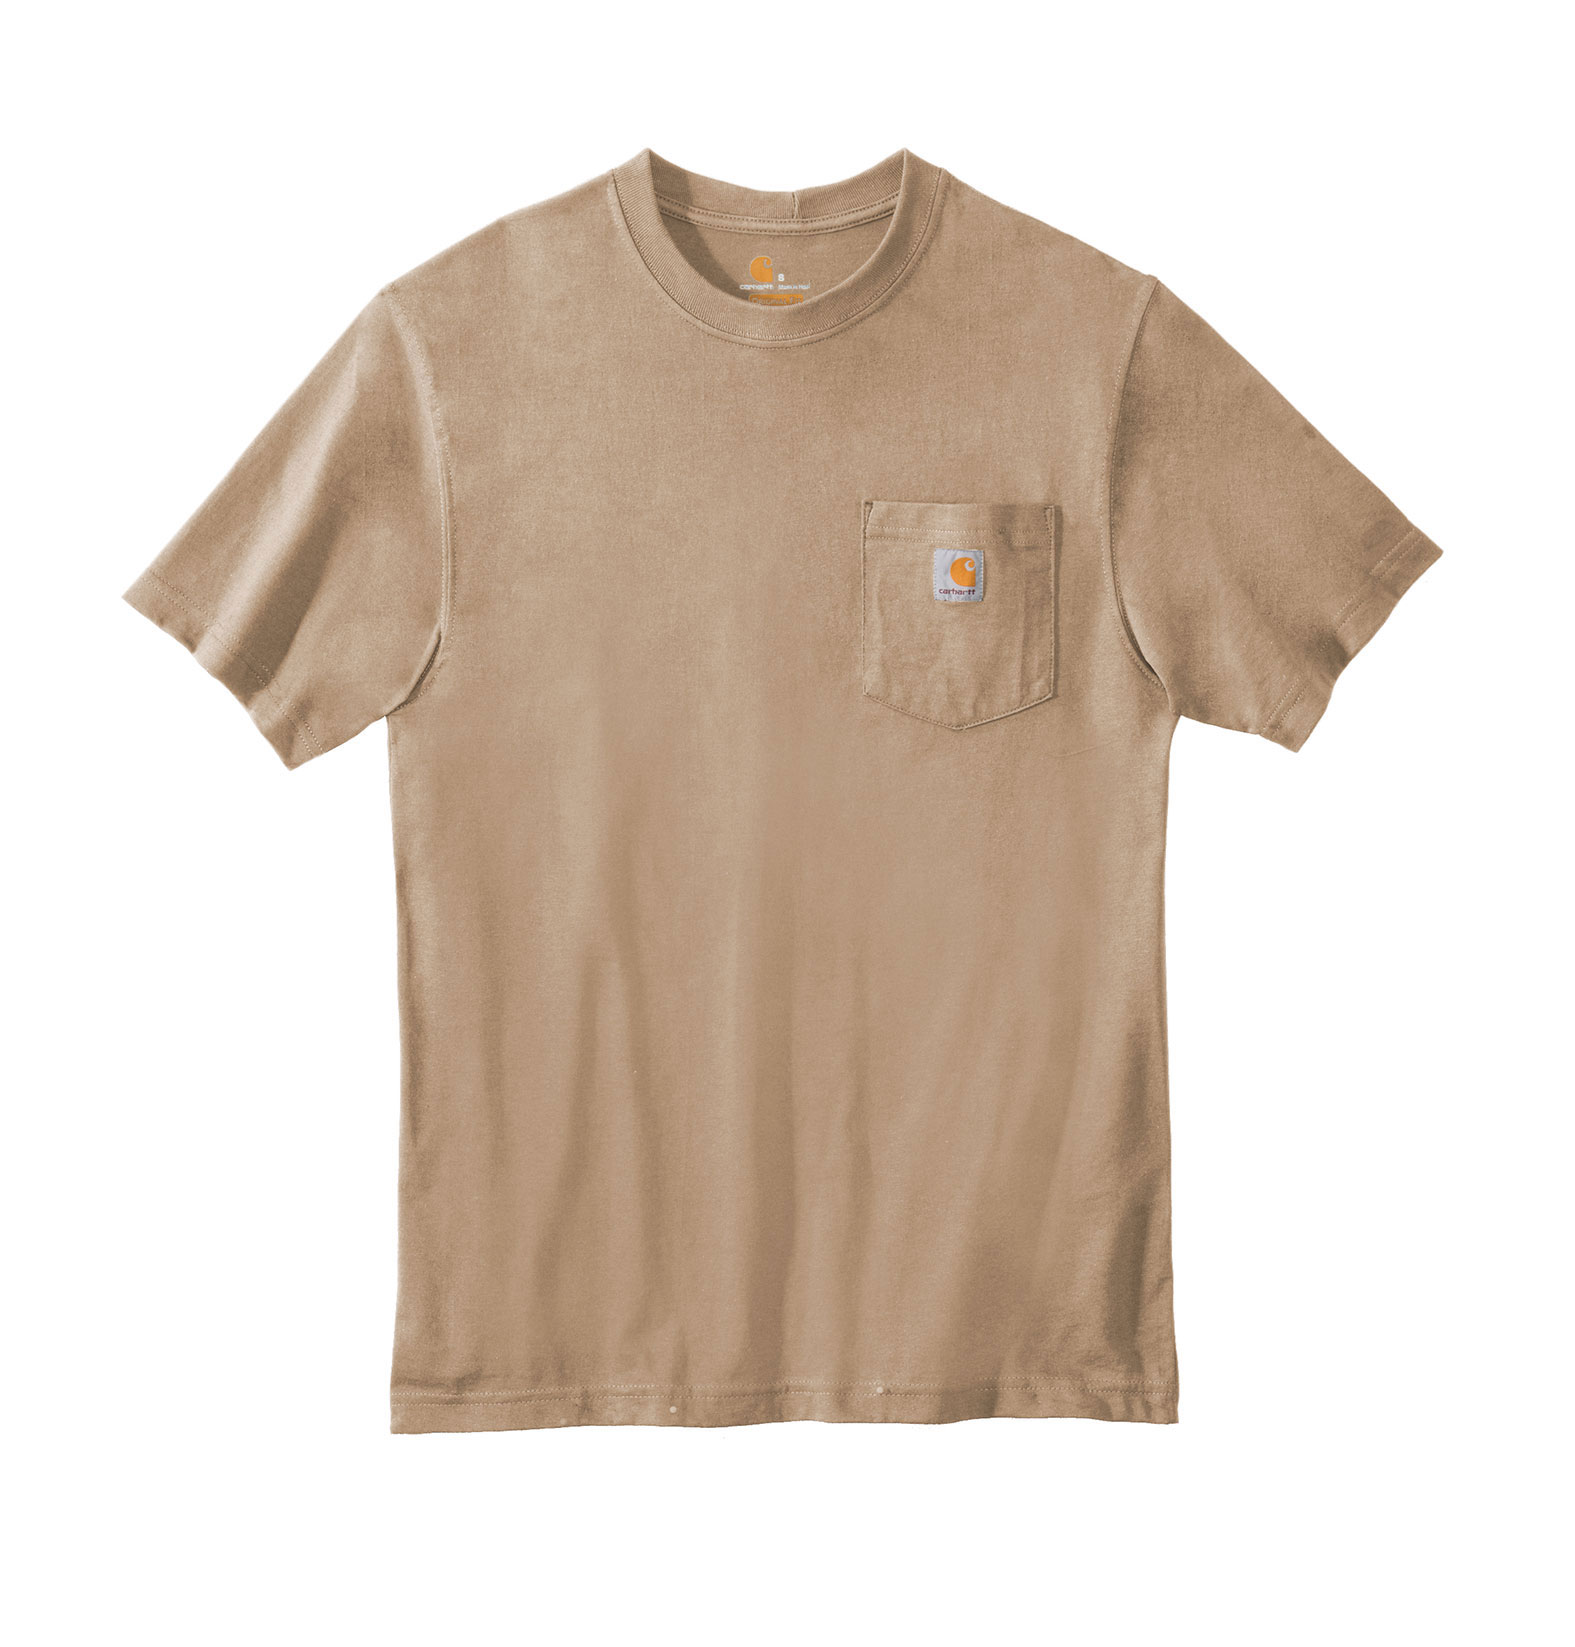 Carhartt Tall Workwear Pocket Short Sleeve T-shirt